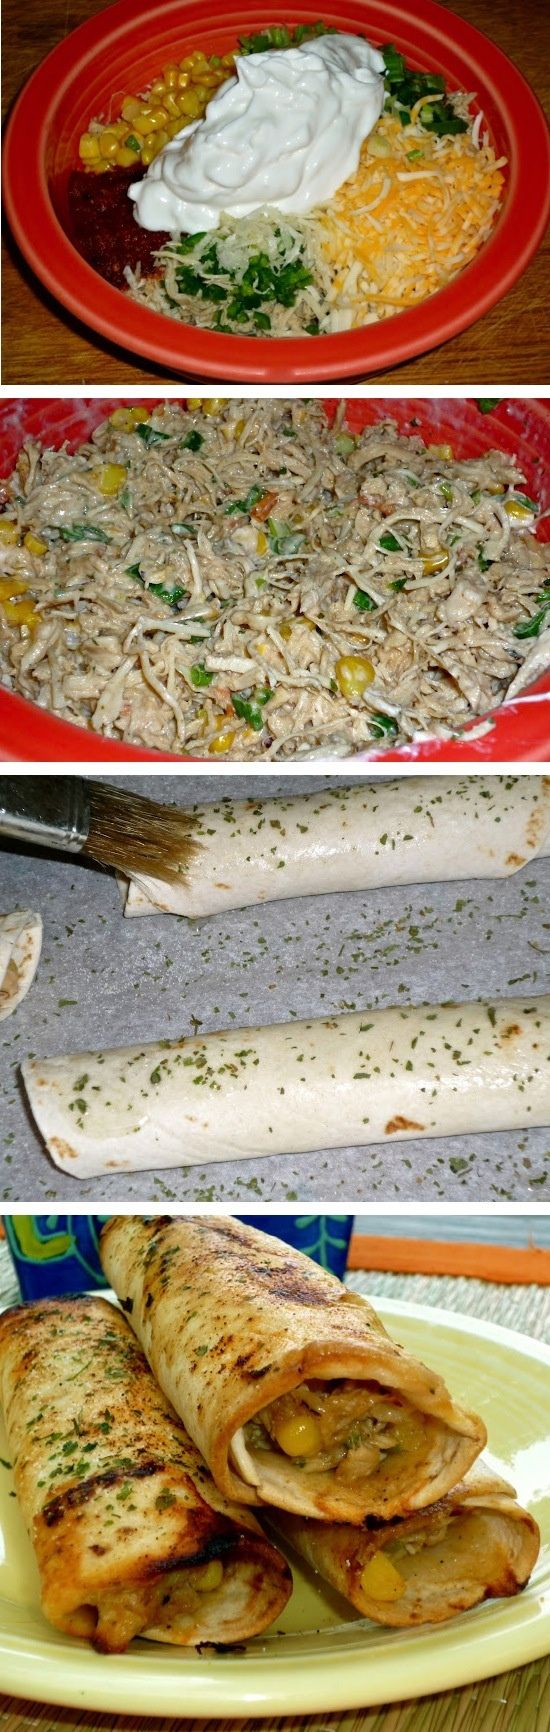 Crispy Chicken Tortilla Roll-ups- cooked i the crockpot with rotel tomatoes and black beans added sour cream instead of yogurt. So good!